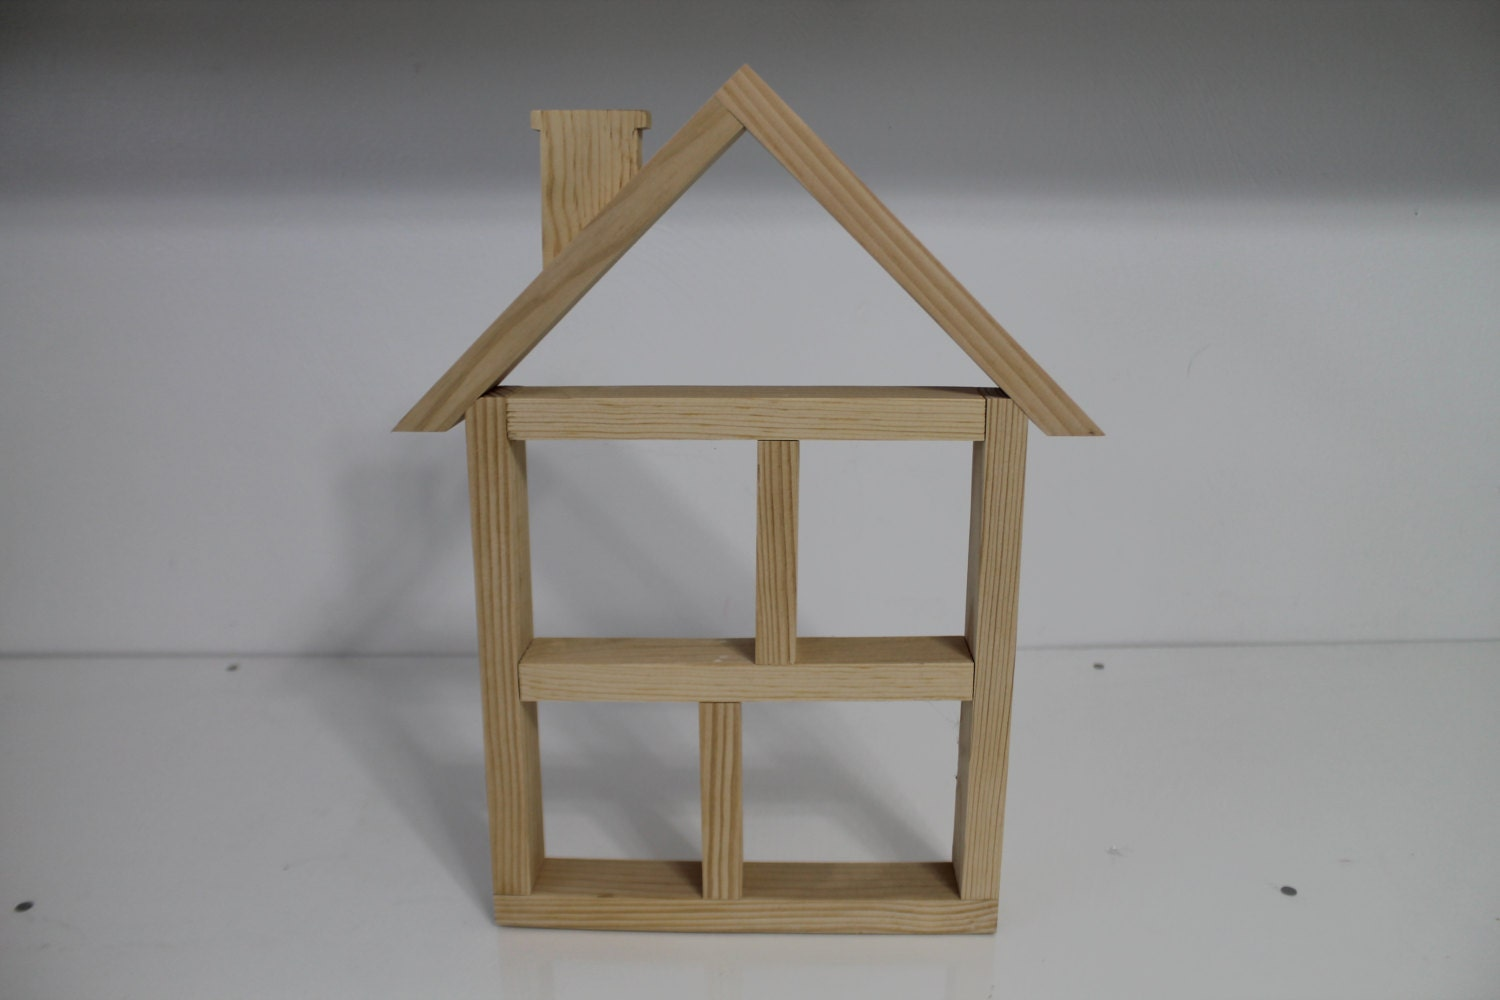 Amazing photo of Unfinished House Wooden Shelf by WoodentItBeNice on Etsy with #614F38 color and 1500x1000 pixels